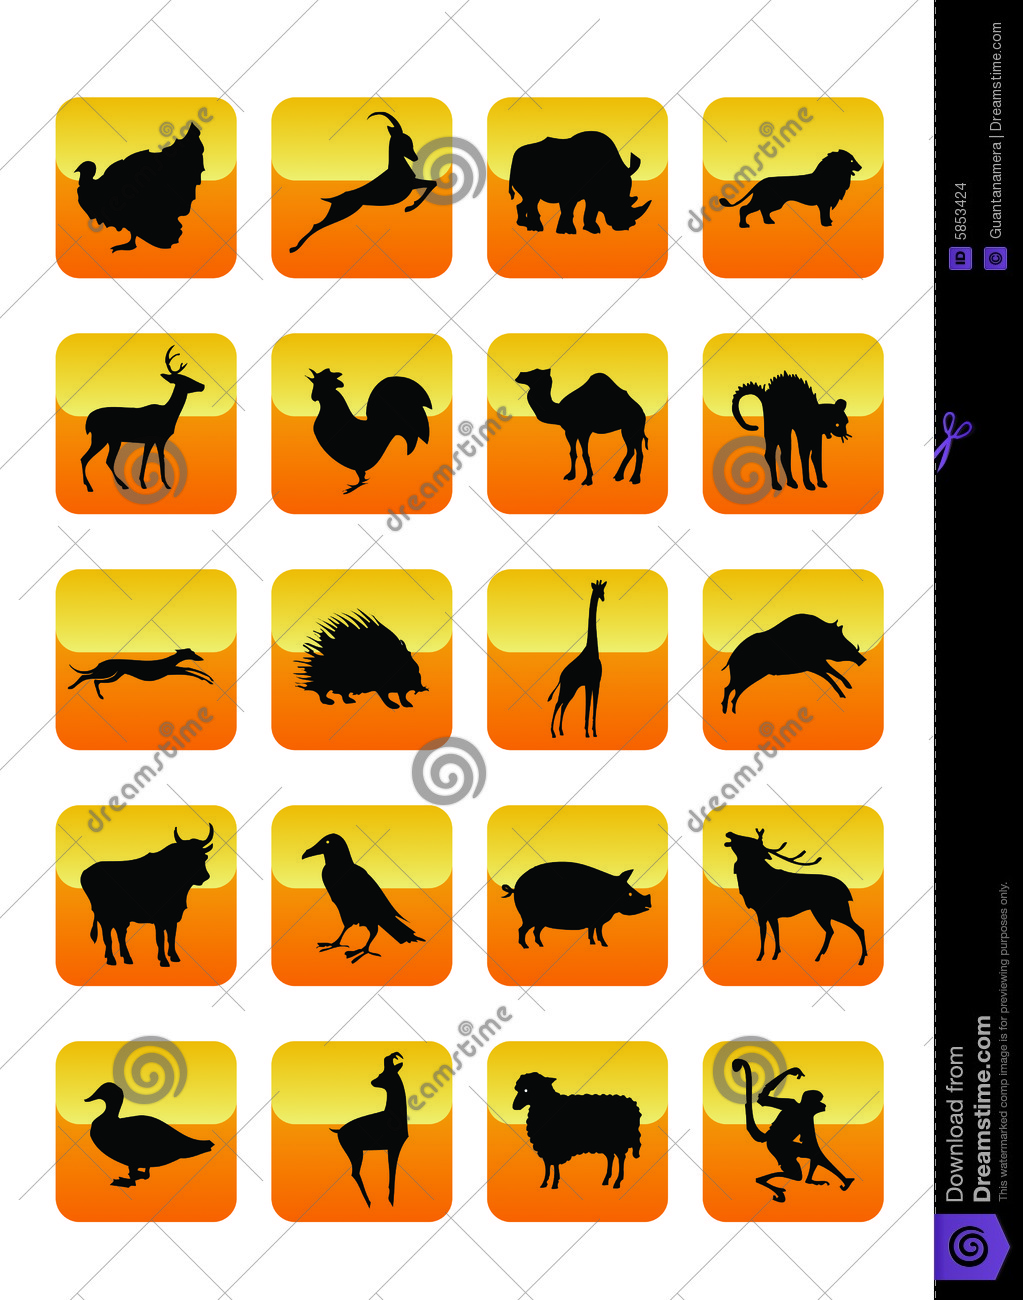 Graphismes 01 d animaux